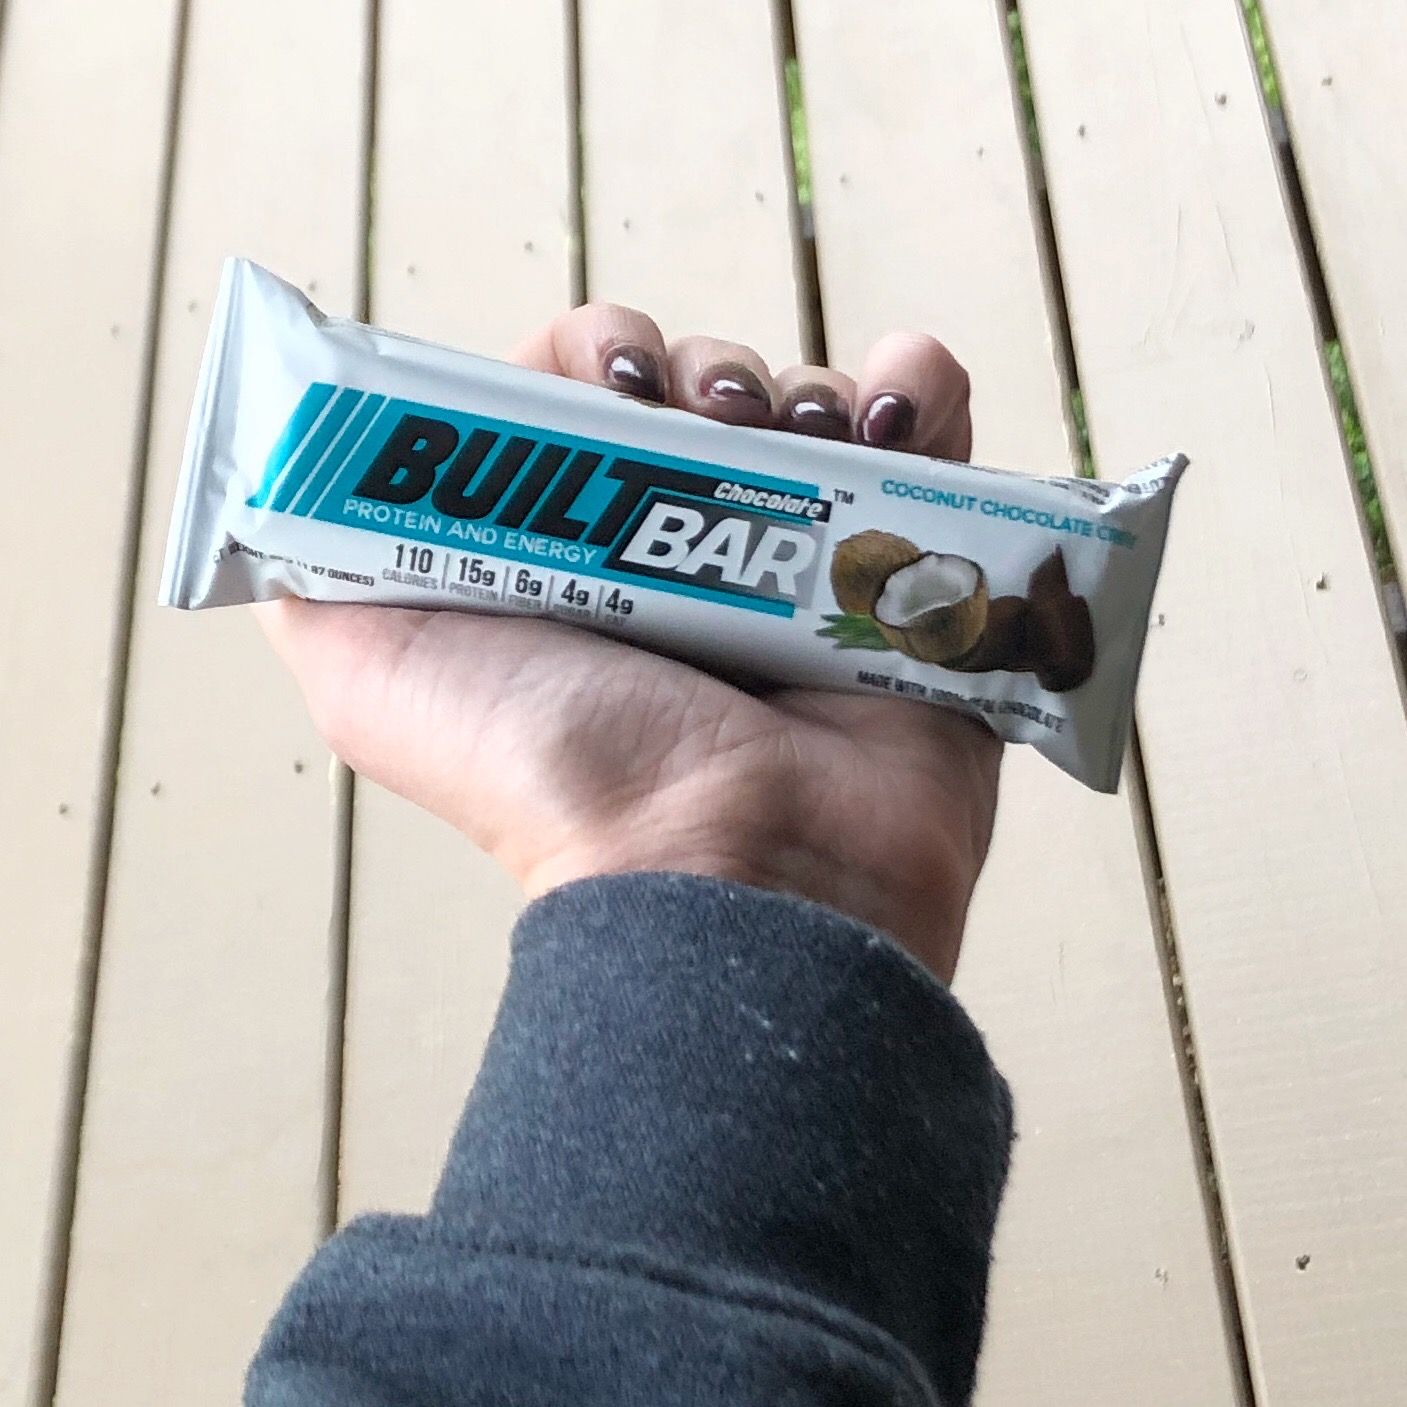 Built Bar Review – Macros, Best Flavors & Where to Buy